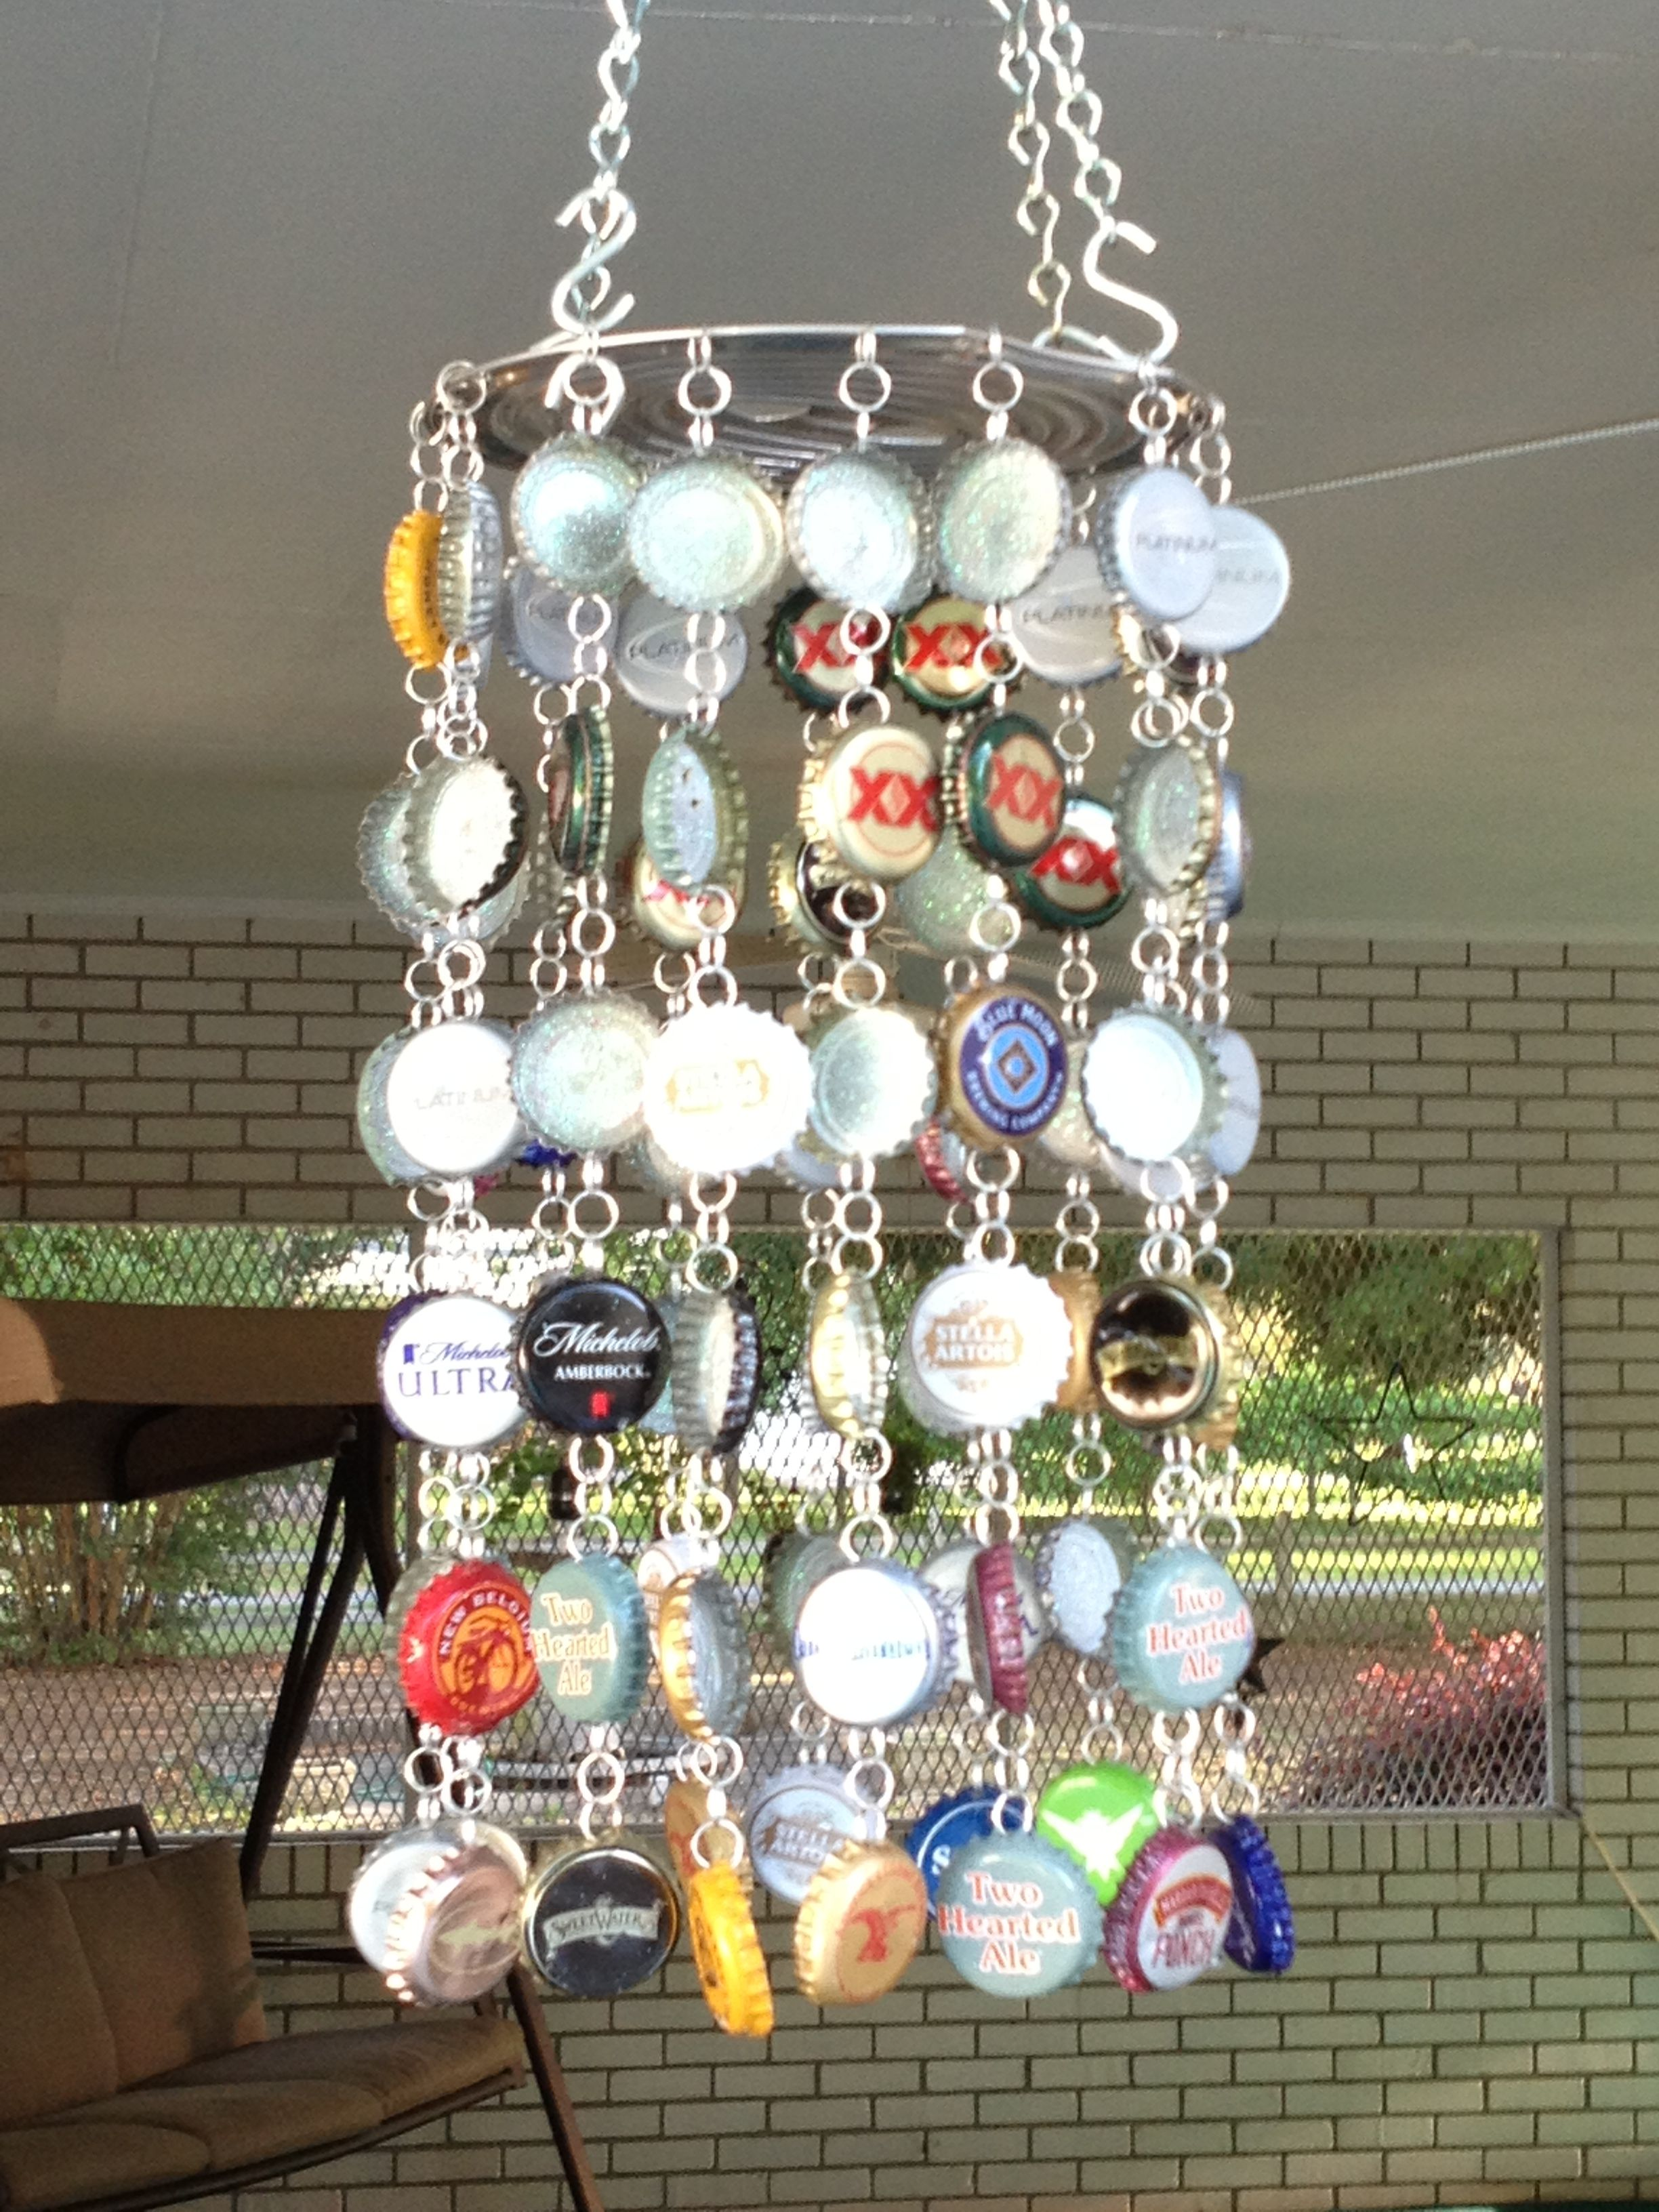 Pin by Beatrix on Upcycling Recycling Repurposing | Bottle cap crafts, Bottle  cap art, Wind chimes